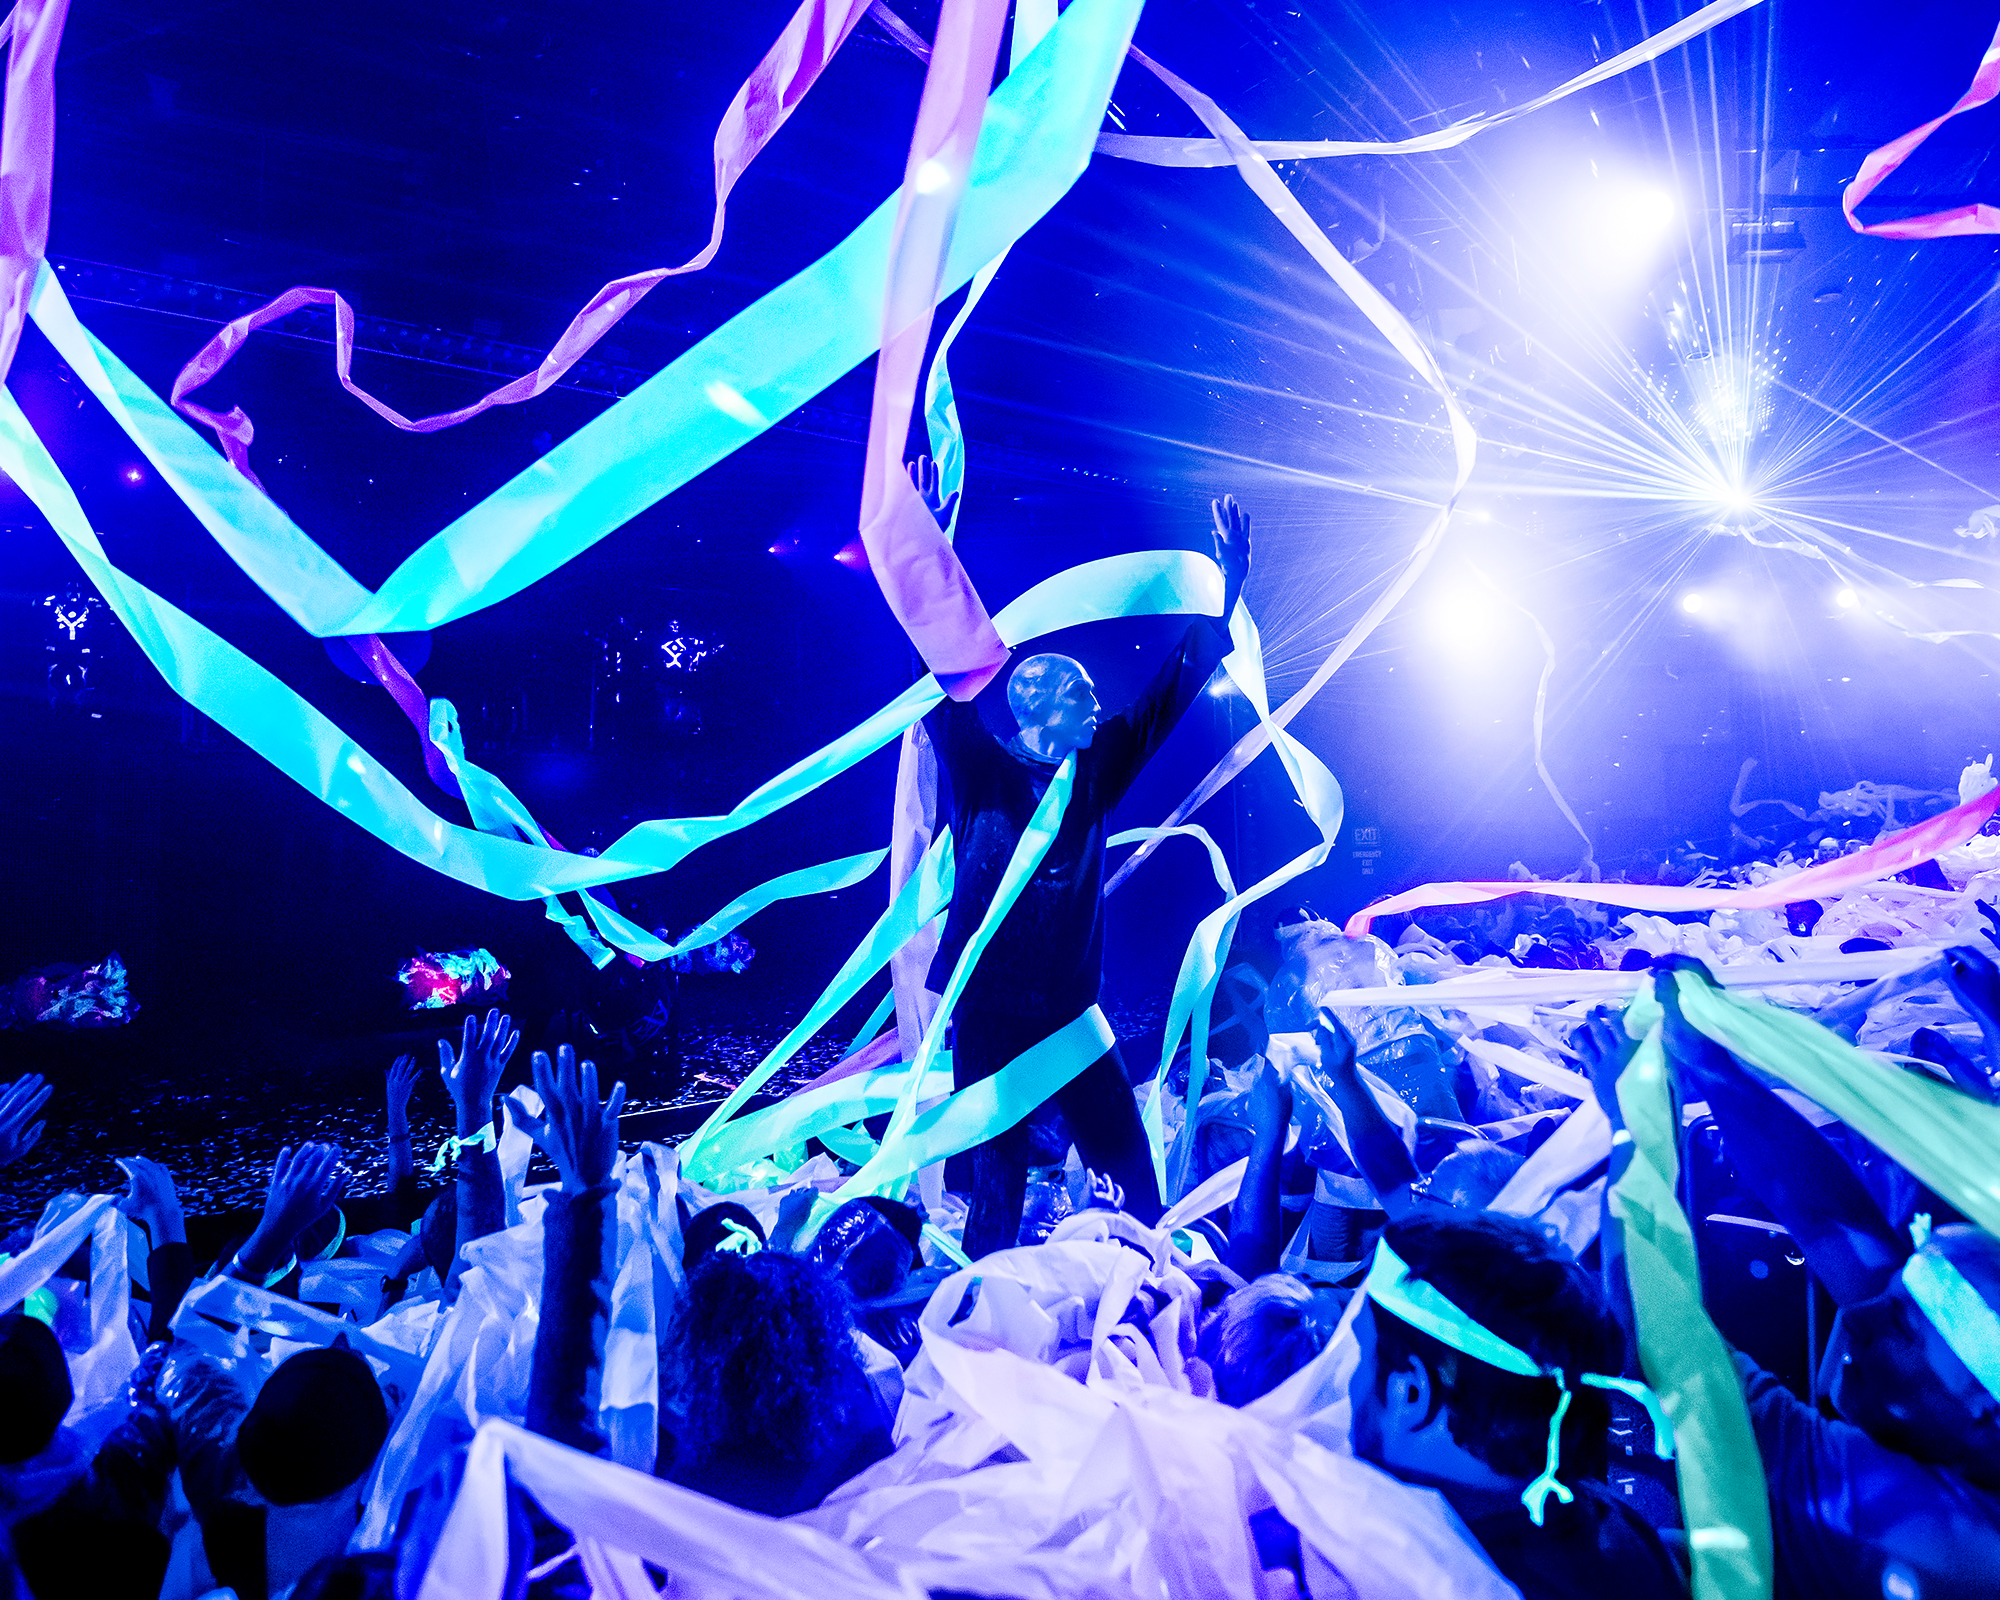 BlueMan_photo_PaperFinale_2000x16000.jpg.jpg